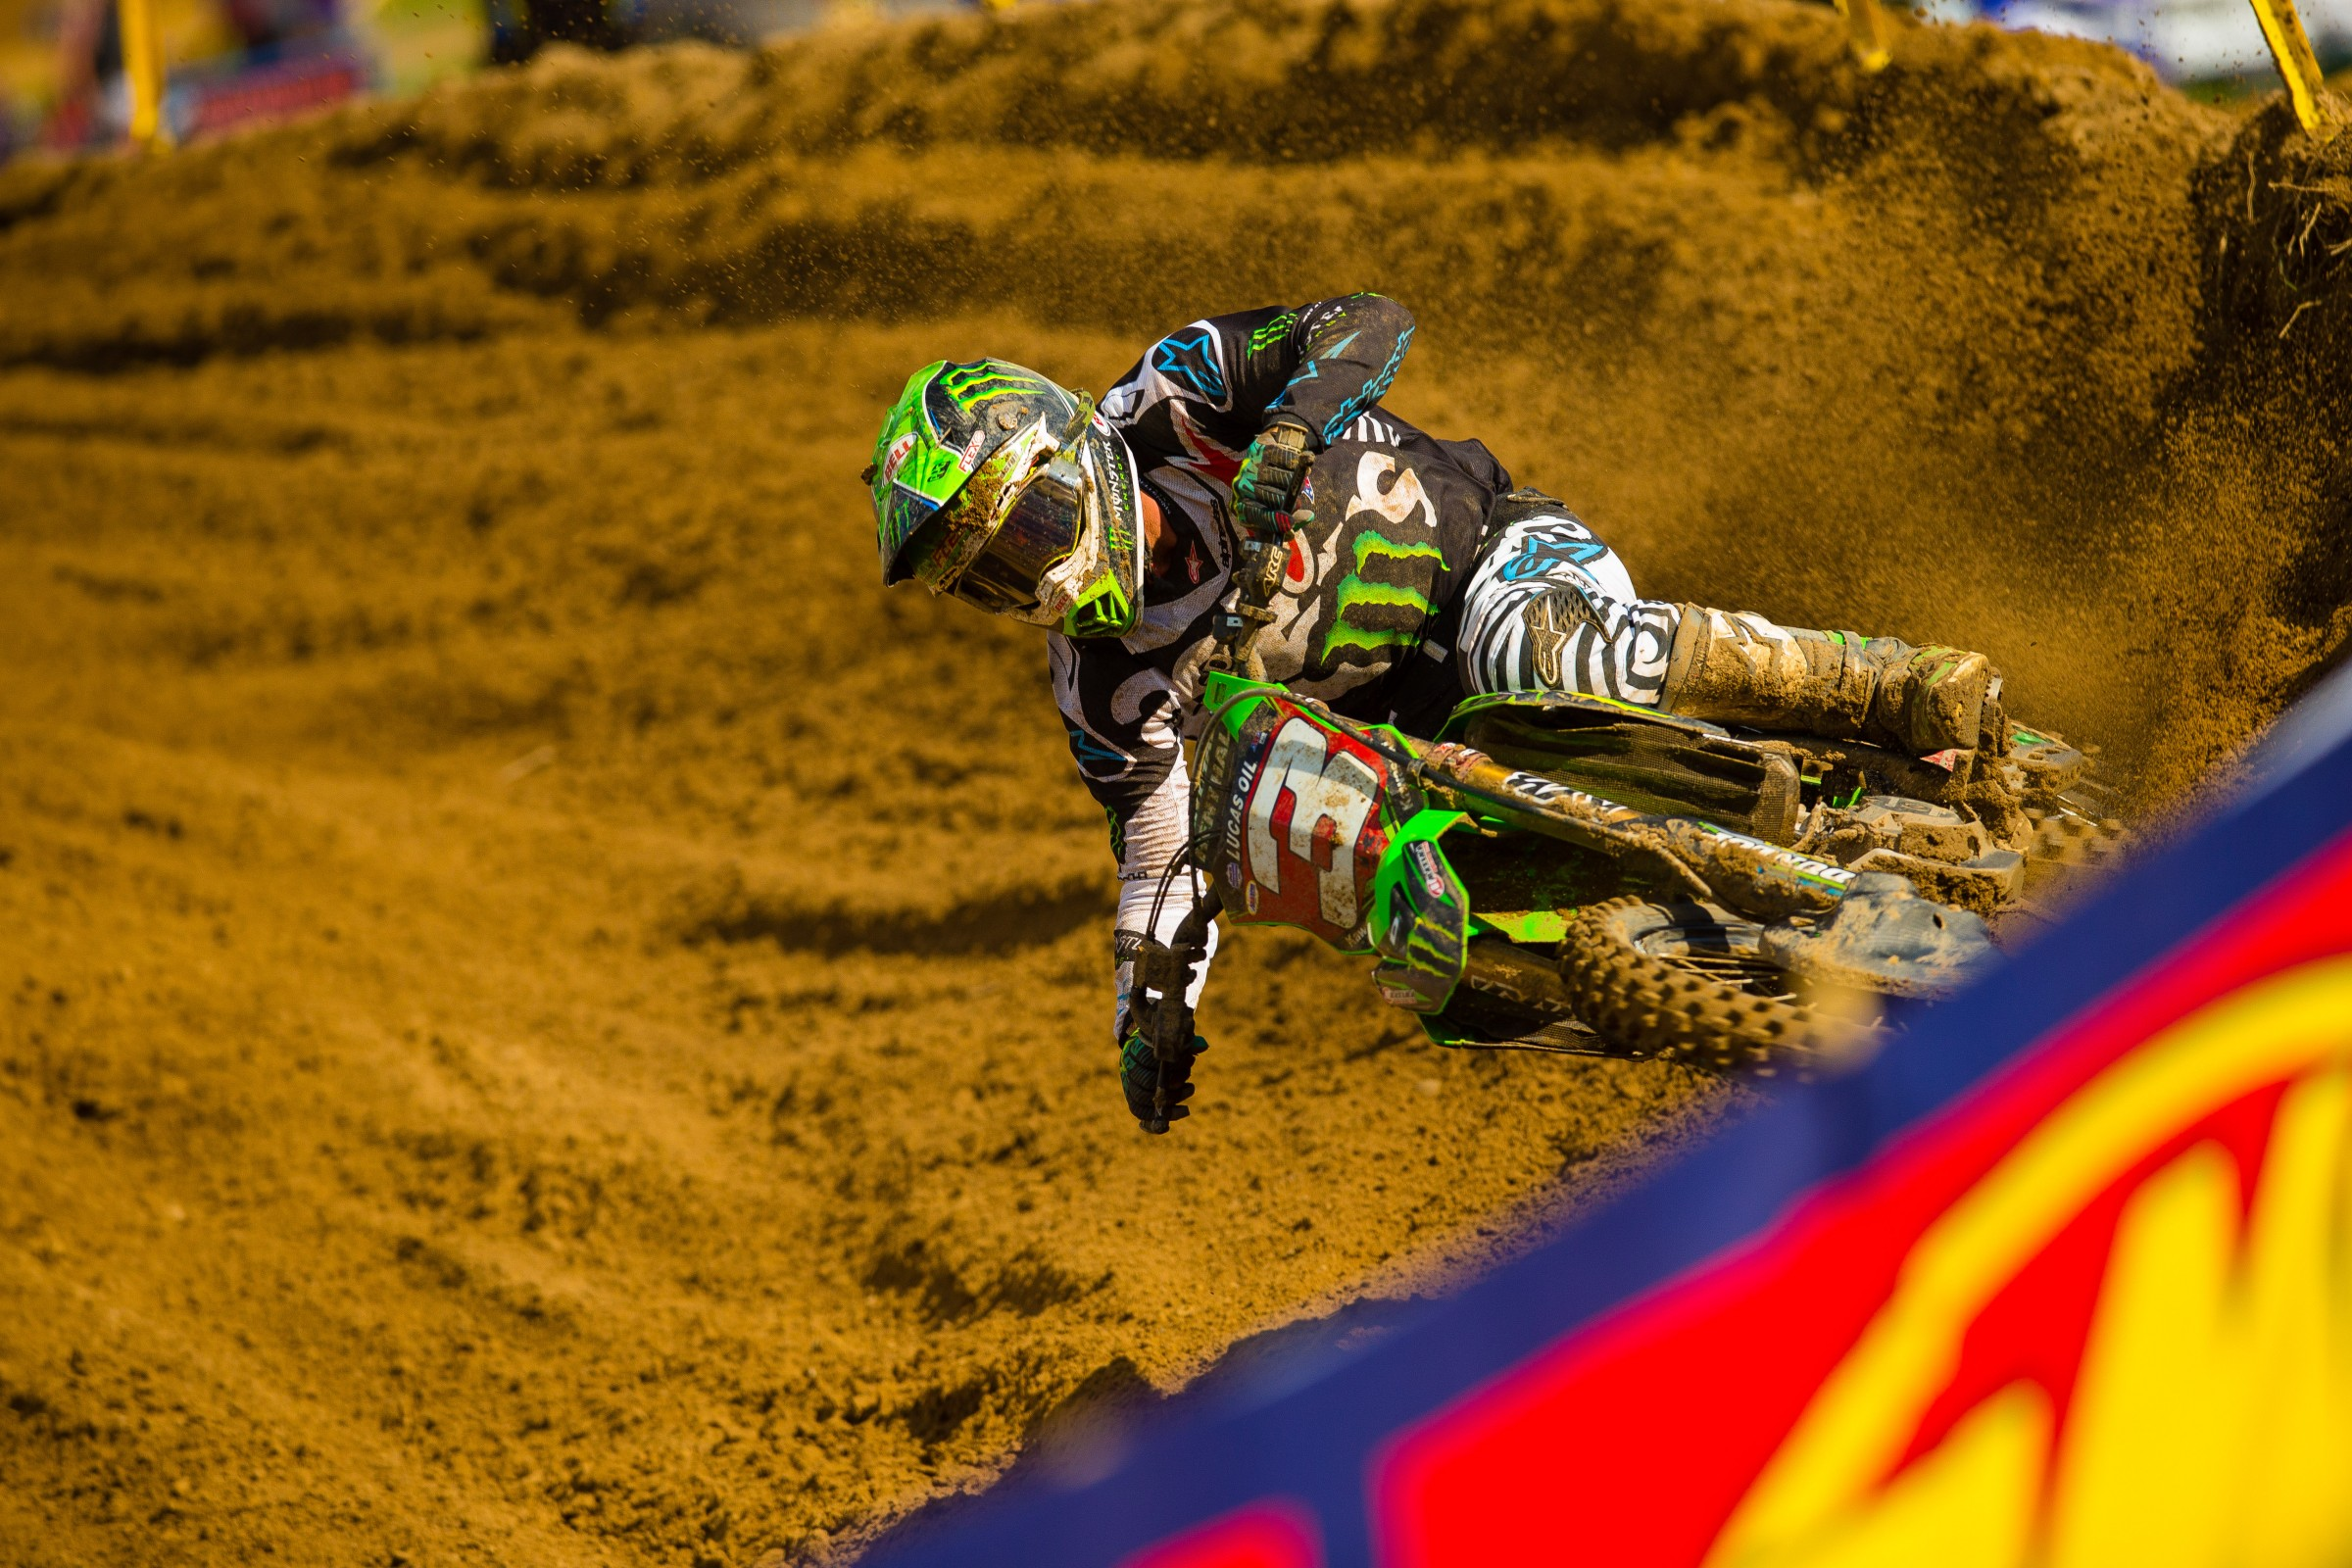 Tomac crashed twice in the opening laps of the second moto.